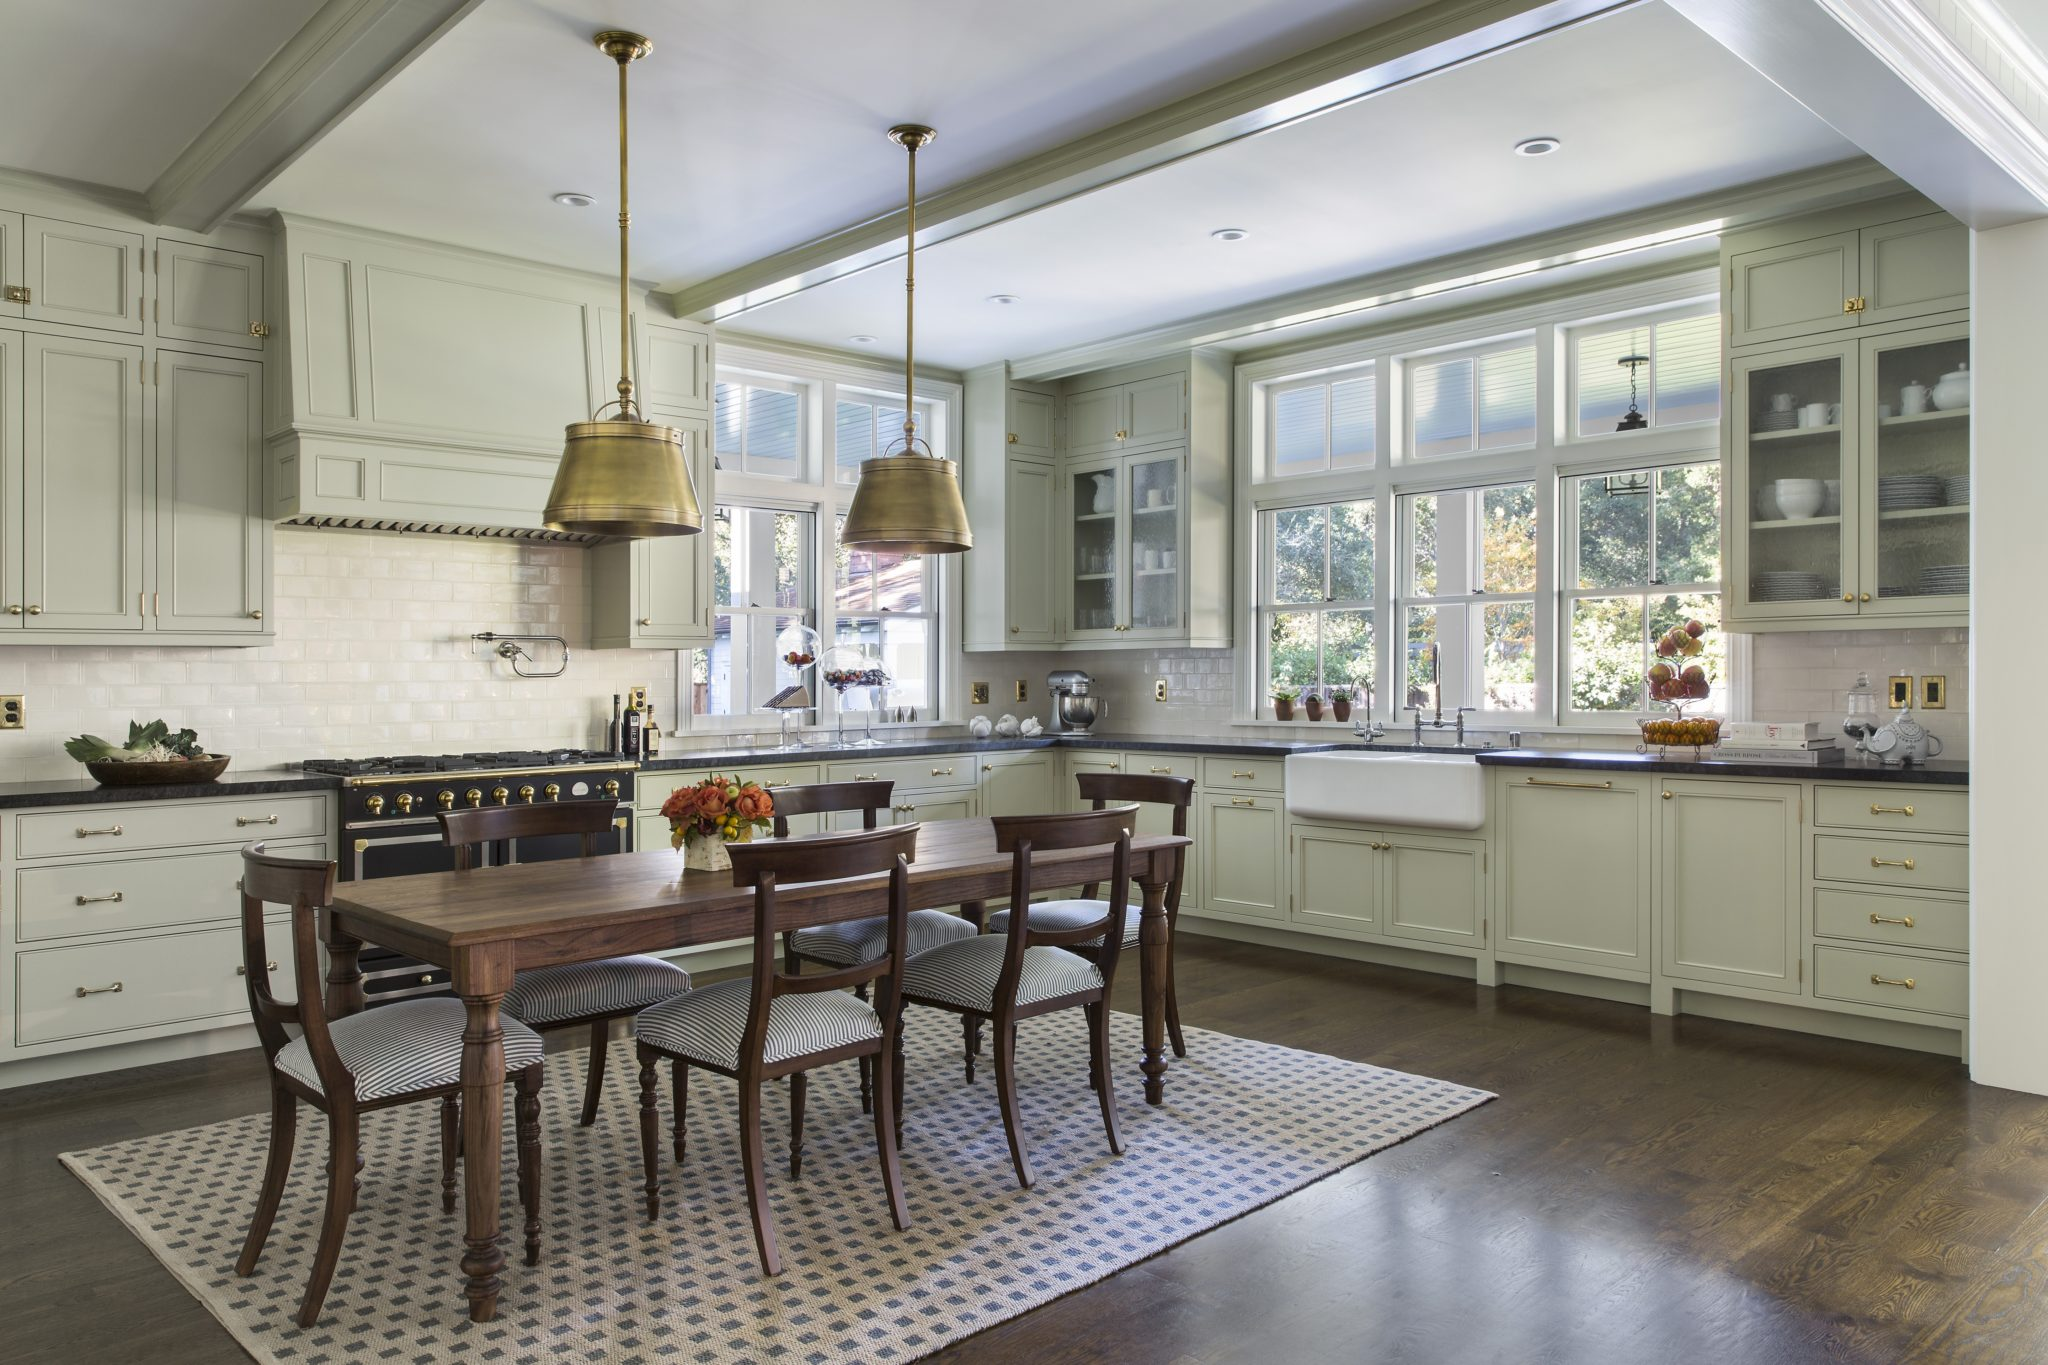 Traditional kitchen with youthful elements by Tineke Triggs / Artistic Designs for Living